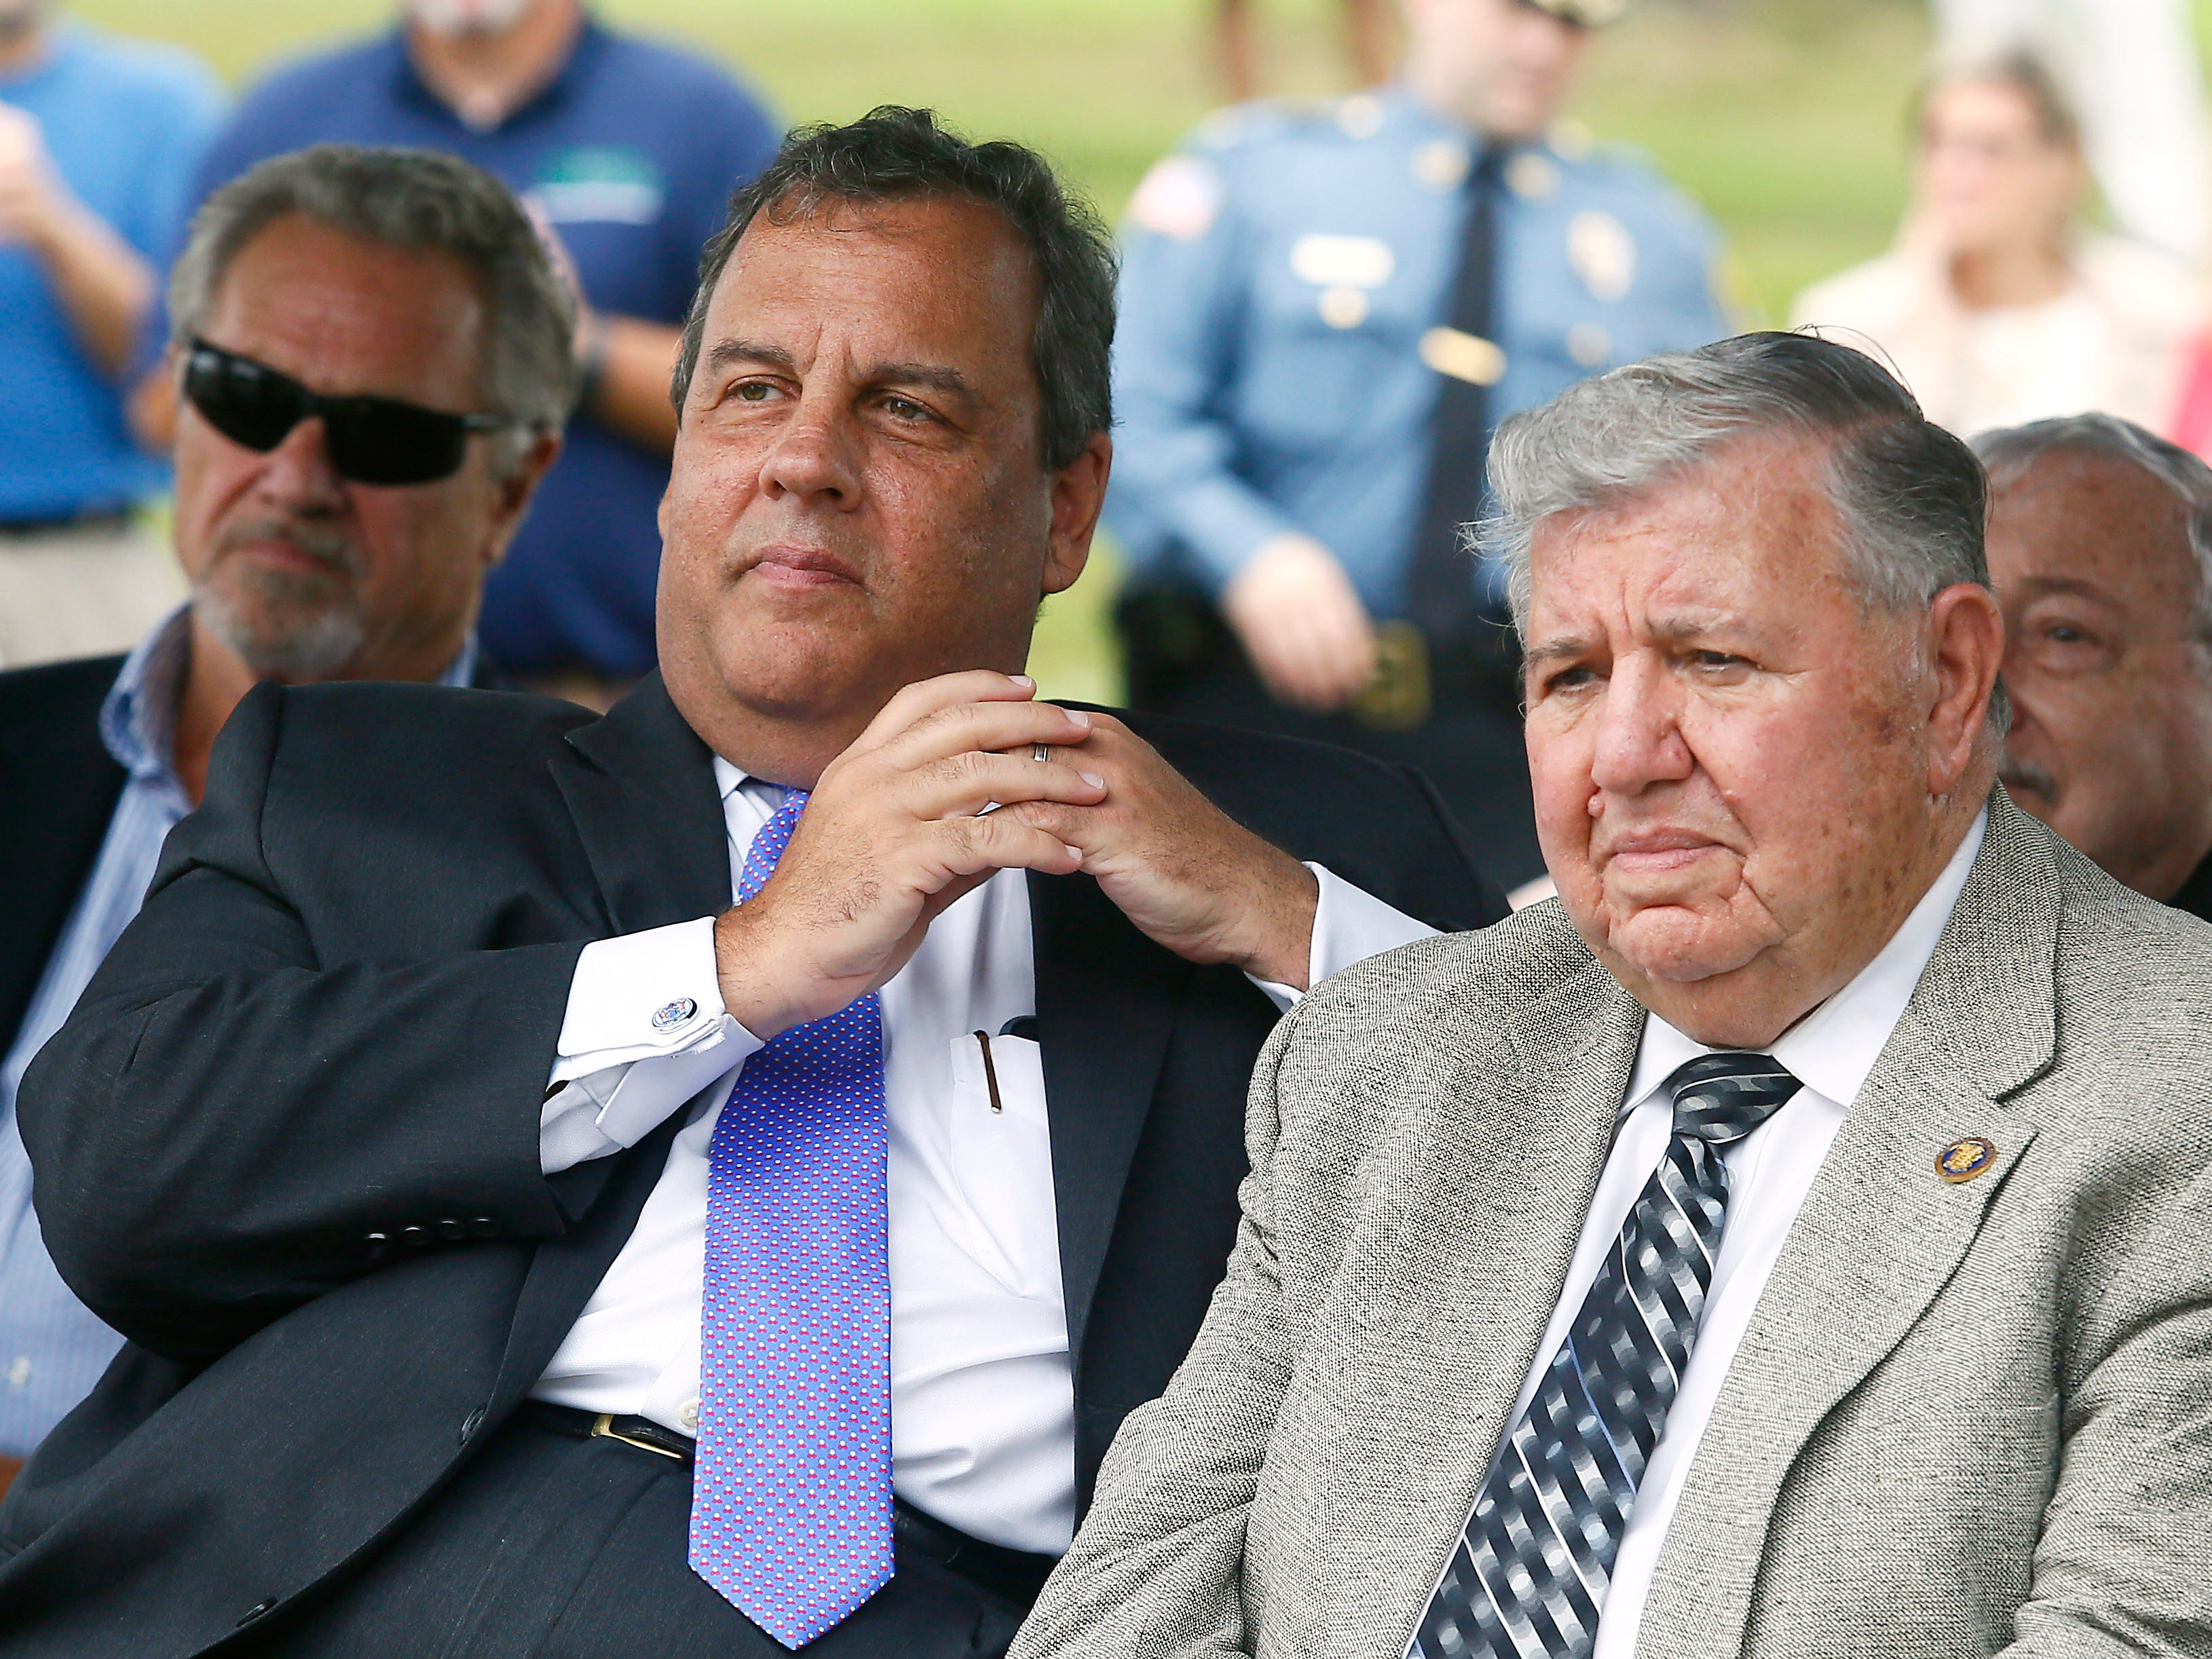 Former New Jersey Governor Chris Christie sits with Senator Tony Bucco as Morris County freeholders formally open Gov. Chris Christie Drive, a new main access road to Central Park of Morris County. September 12, 2018, Morris Plains, NJ